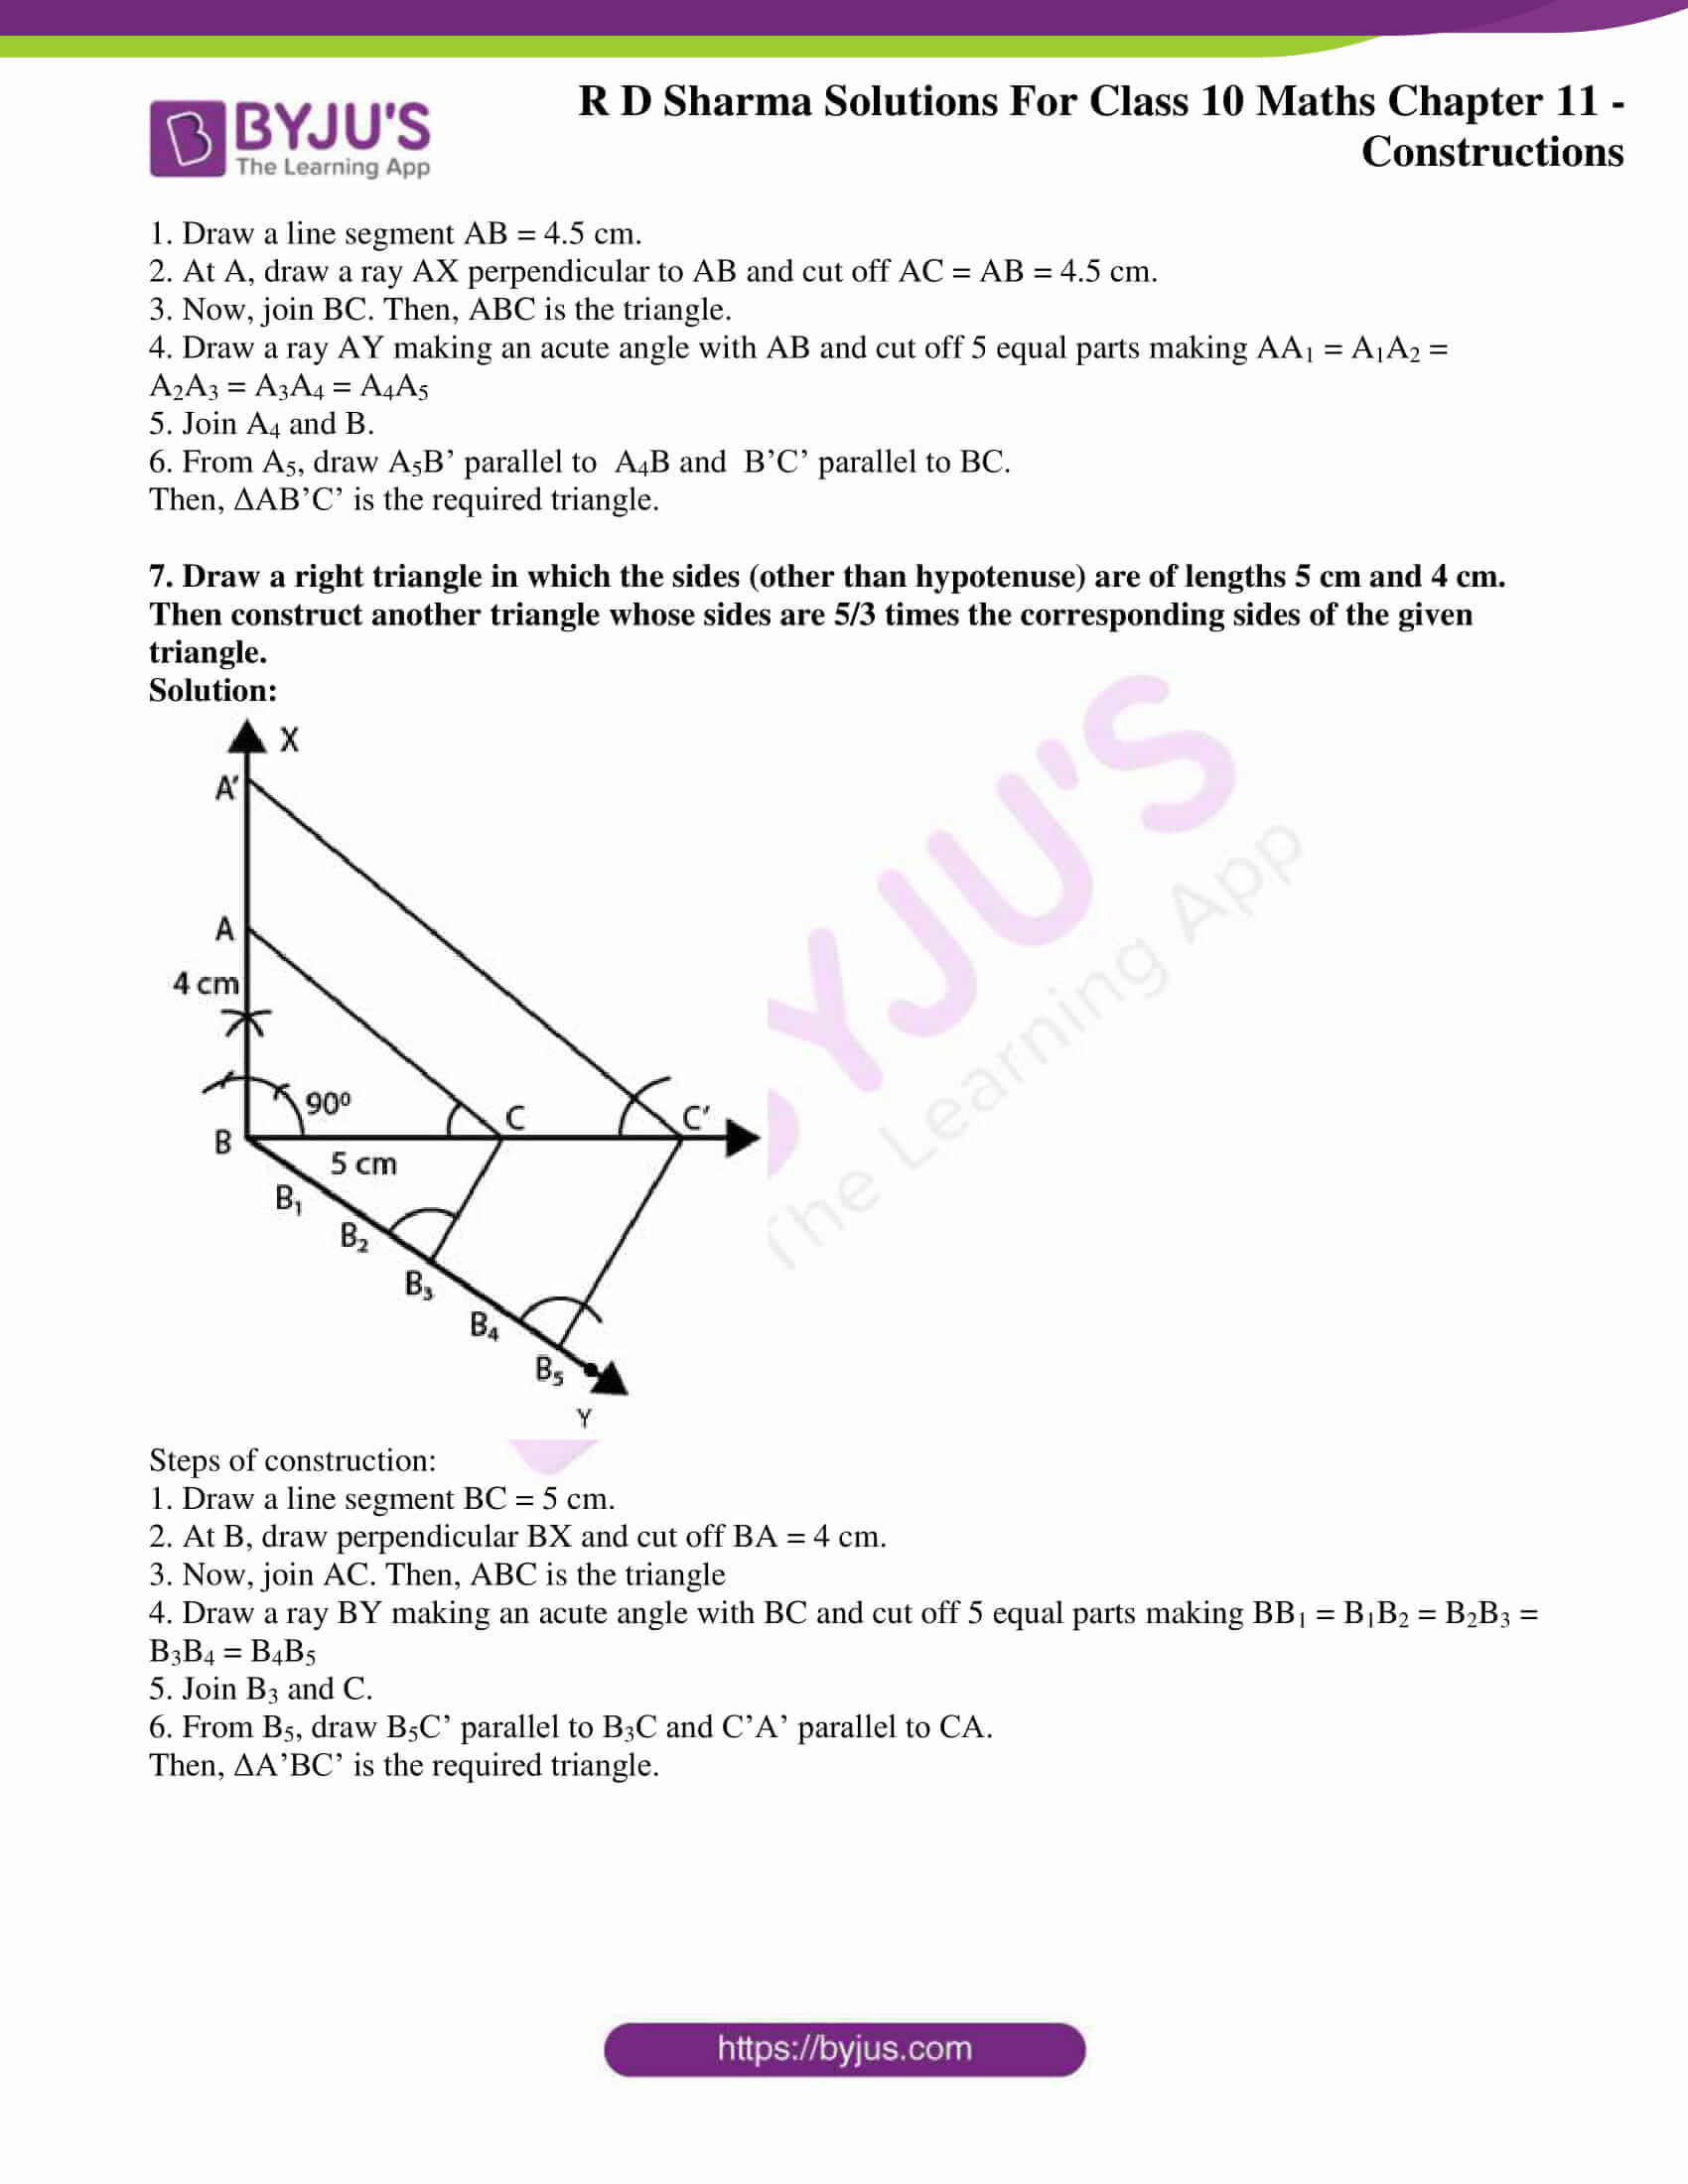 rd sharma class 10 chapter 11 constructions solutions exercise 2 5